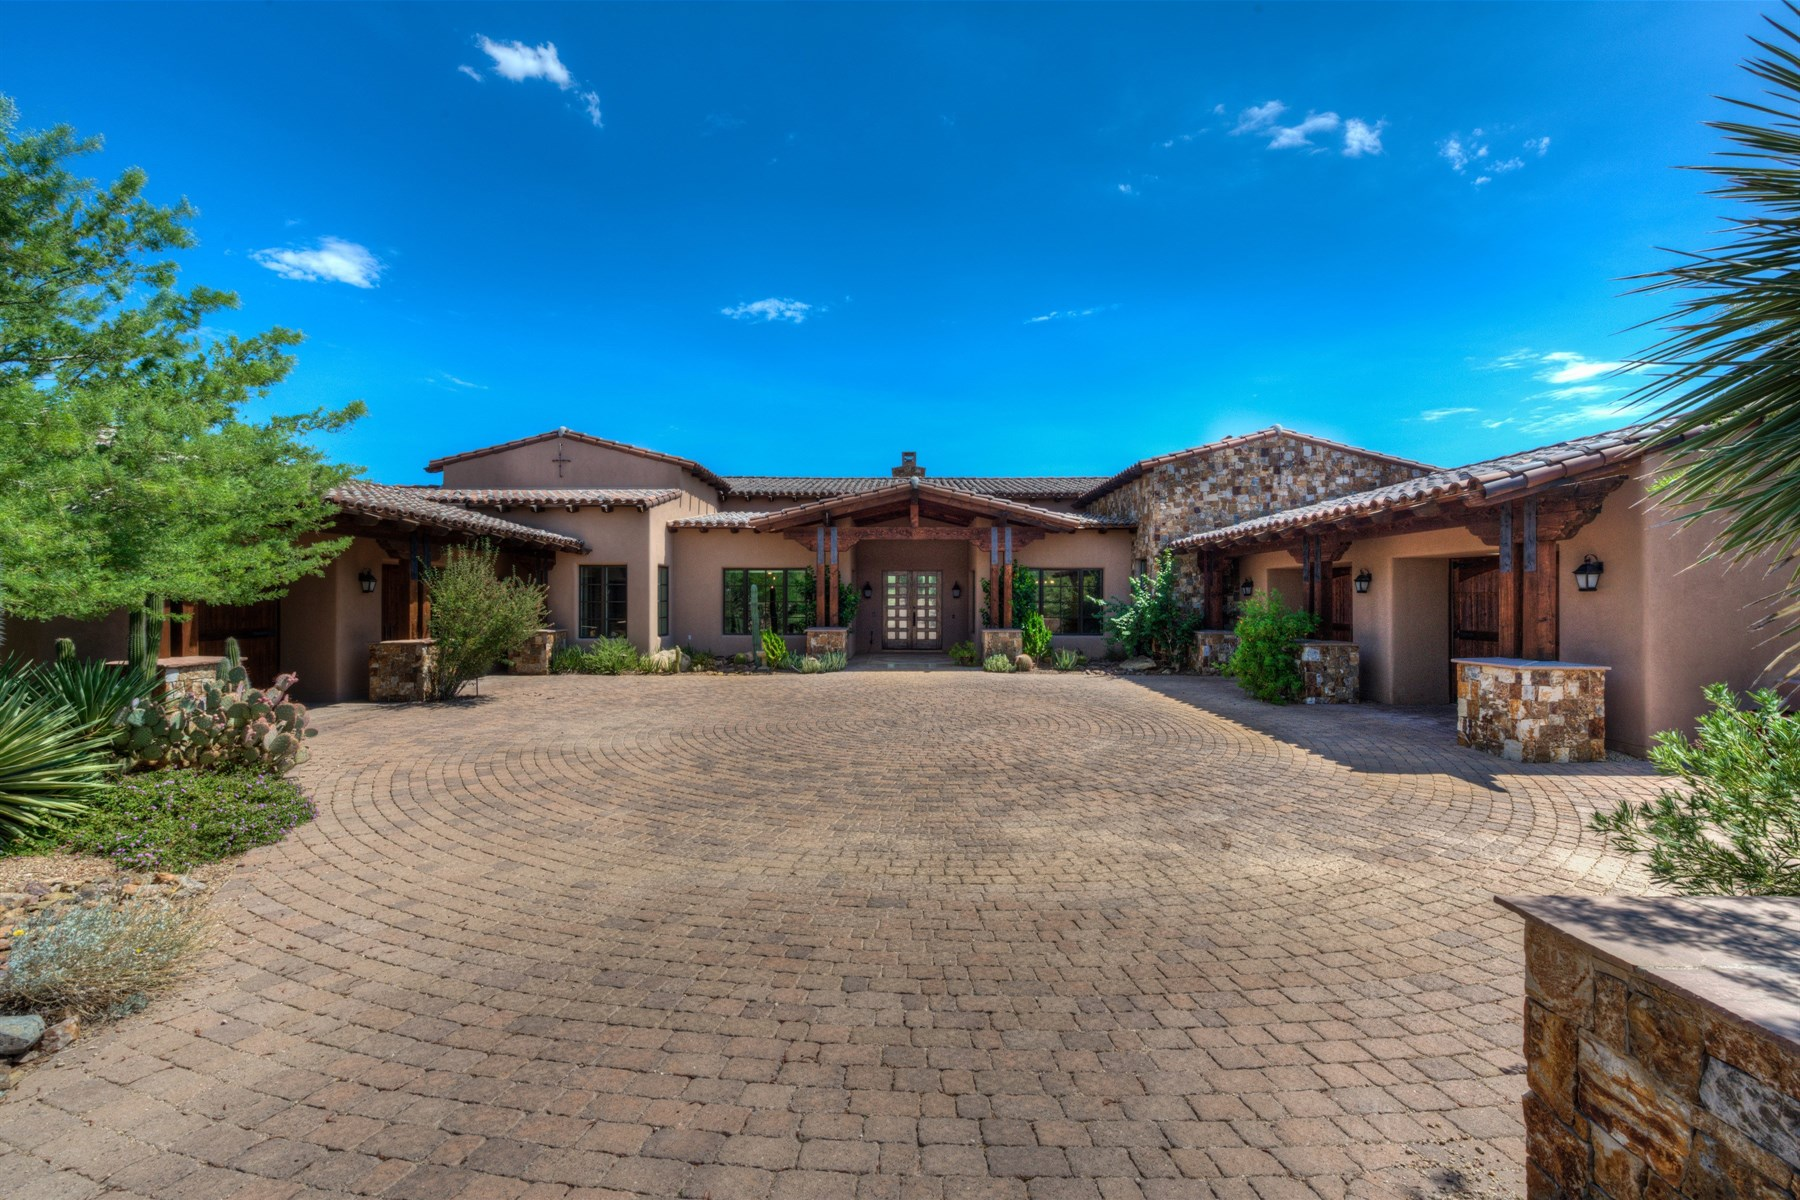 Single Family Home for Sale at Elegant Ranch-Inspired Home Located In Guard-Gated Whisper Rock Estates 8427 E Homestead Circle Scottsdale, Arizona, 85266 United States